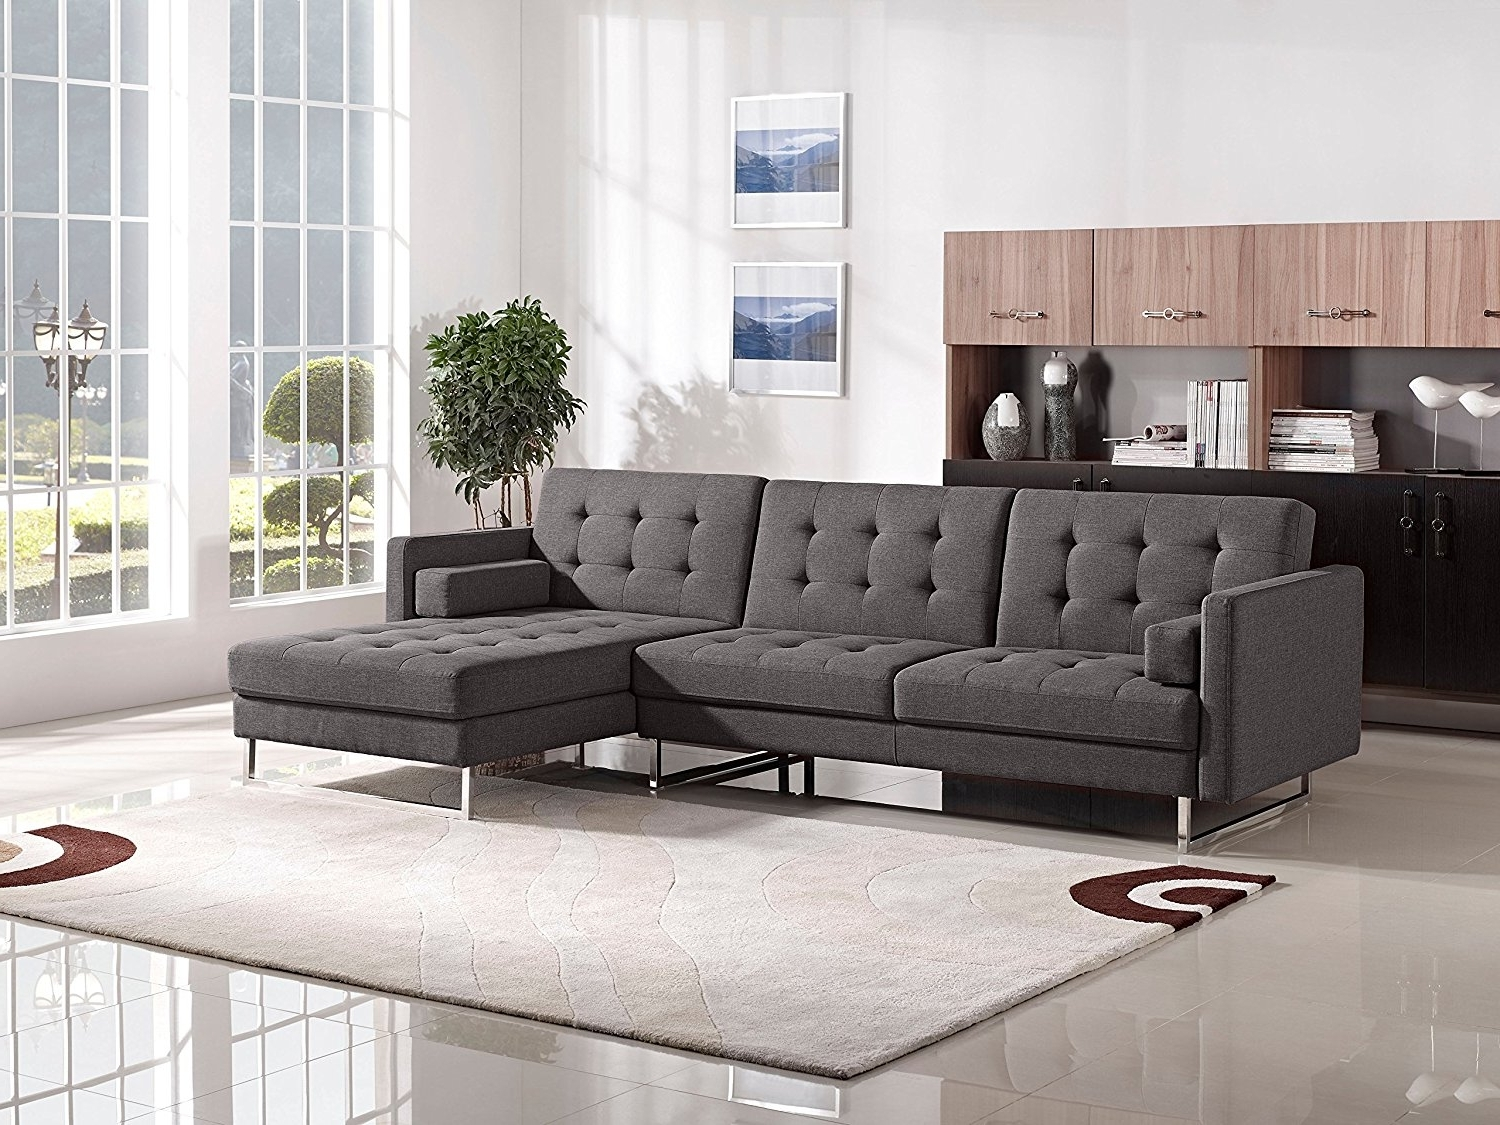 Affordable Tufted Sofas With 2017 Sofa : Cheap Tufted Sofas Tufted White Sofa Grey Tufted Sofa (View 14 of 15)